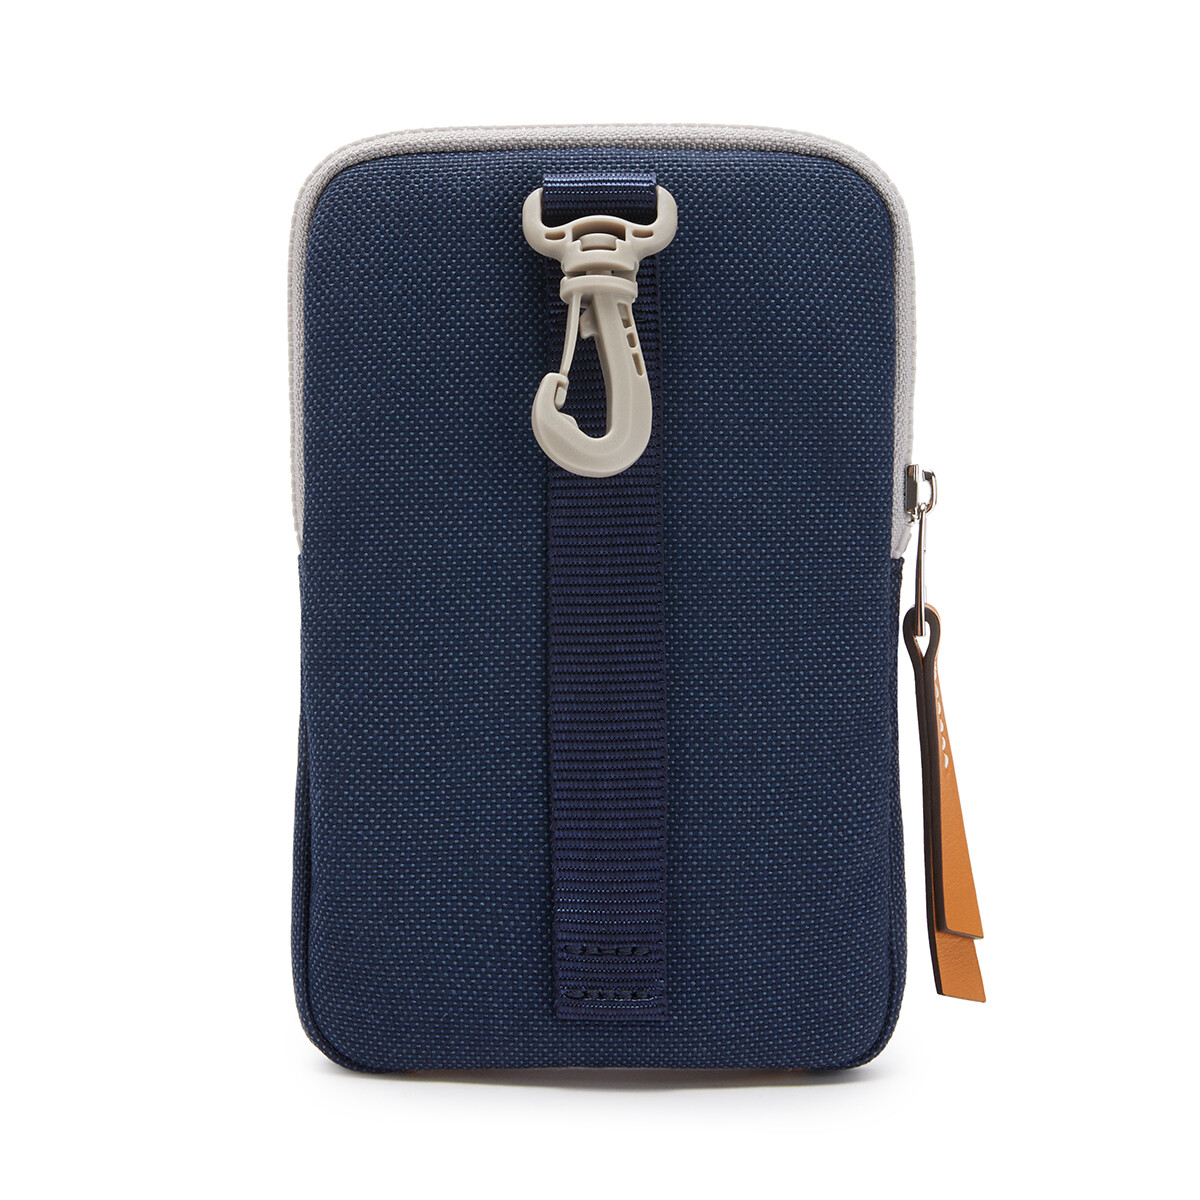 LOEWE Eye/Loewe/Nature Case Electric Blue/Navy Blue front